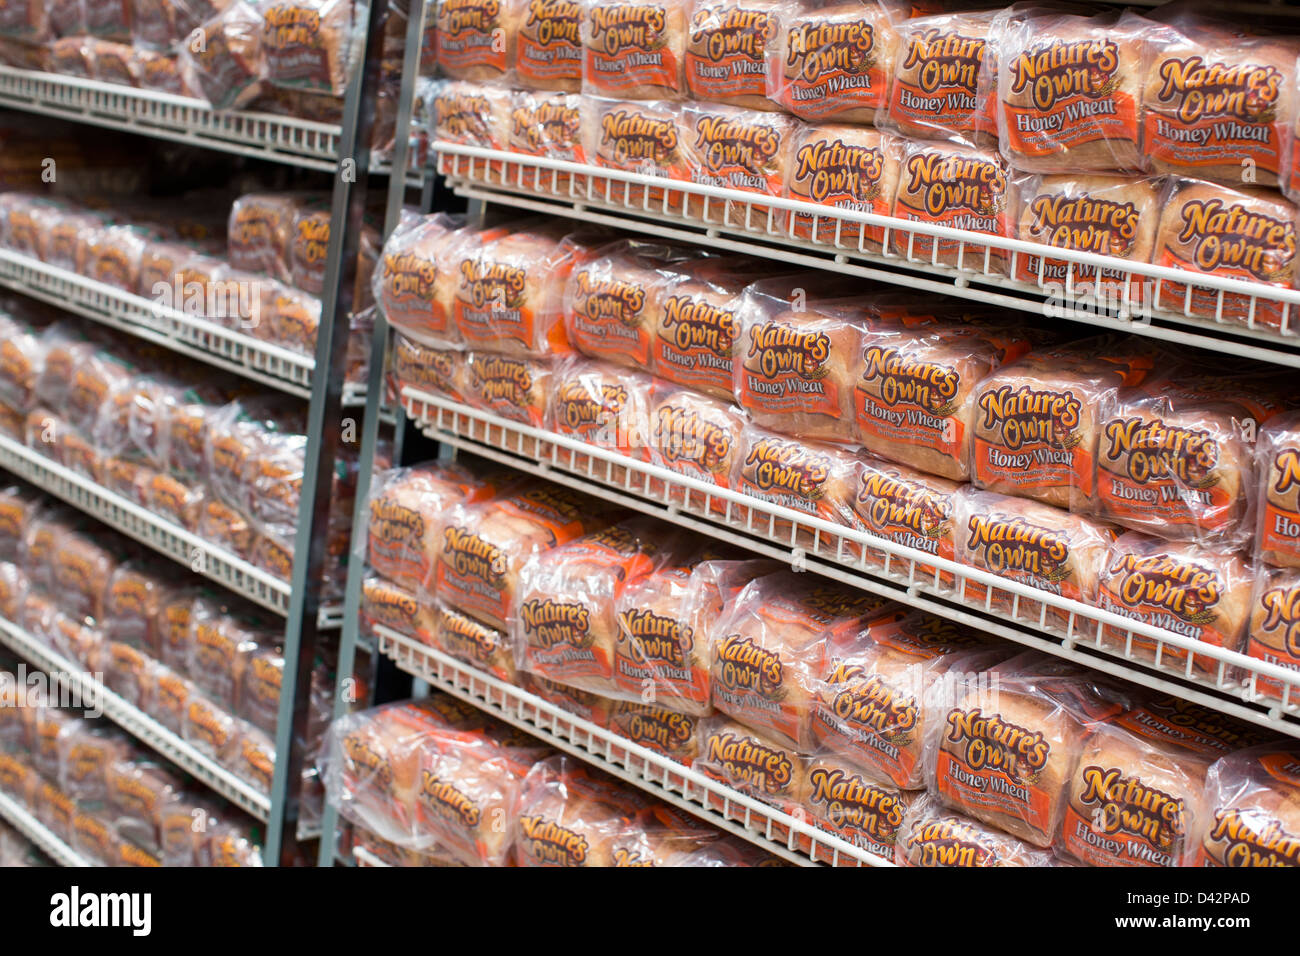 Natures own honey wheat bread on display at a costco wholesale natures own honey wheat bread on display at a costco wholesale warehouse club thecheapjerseys Images